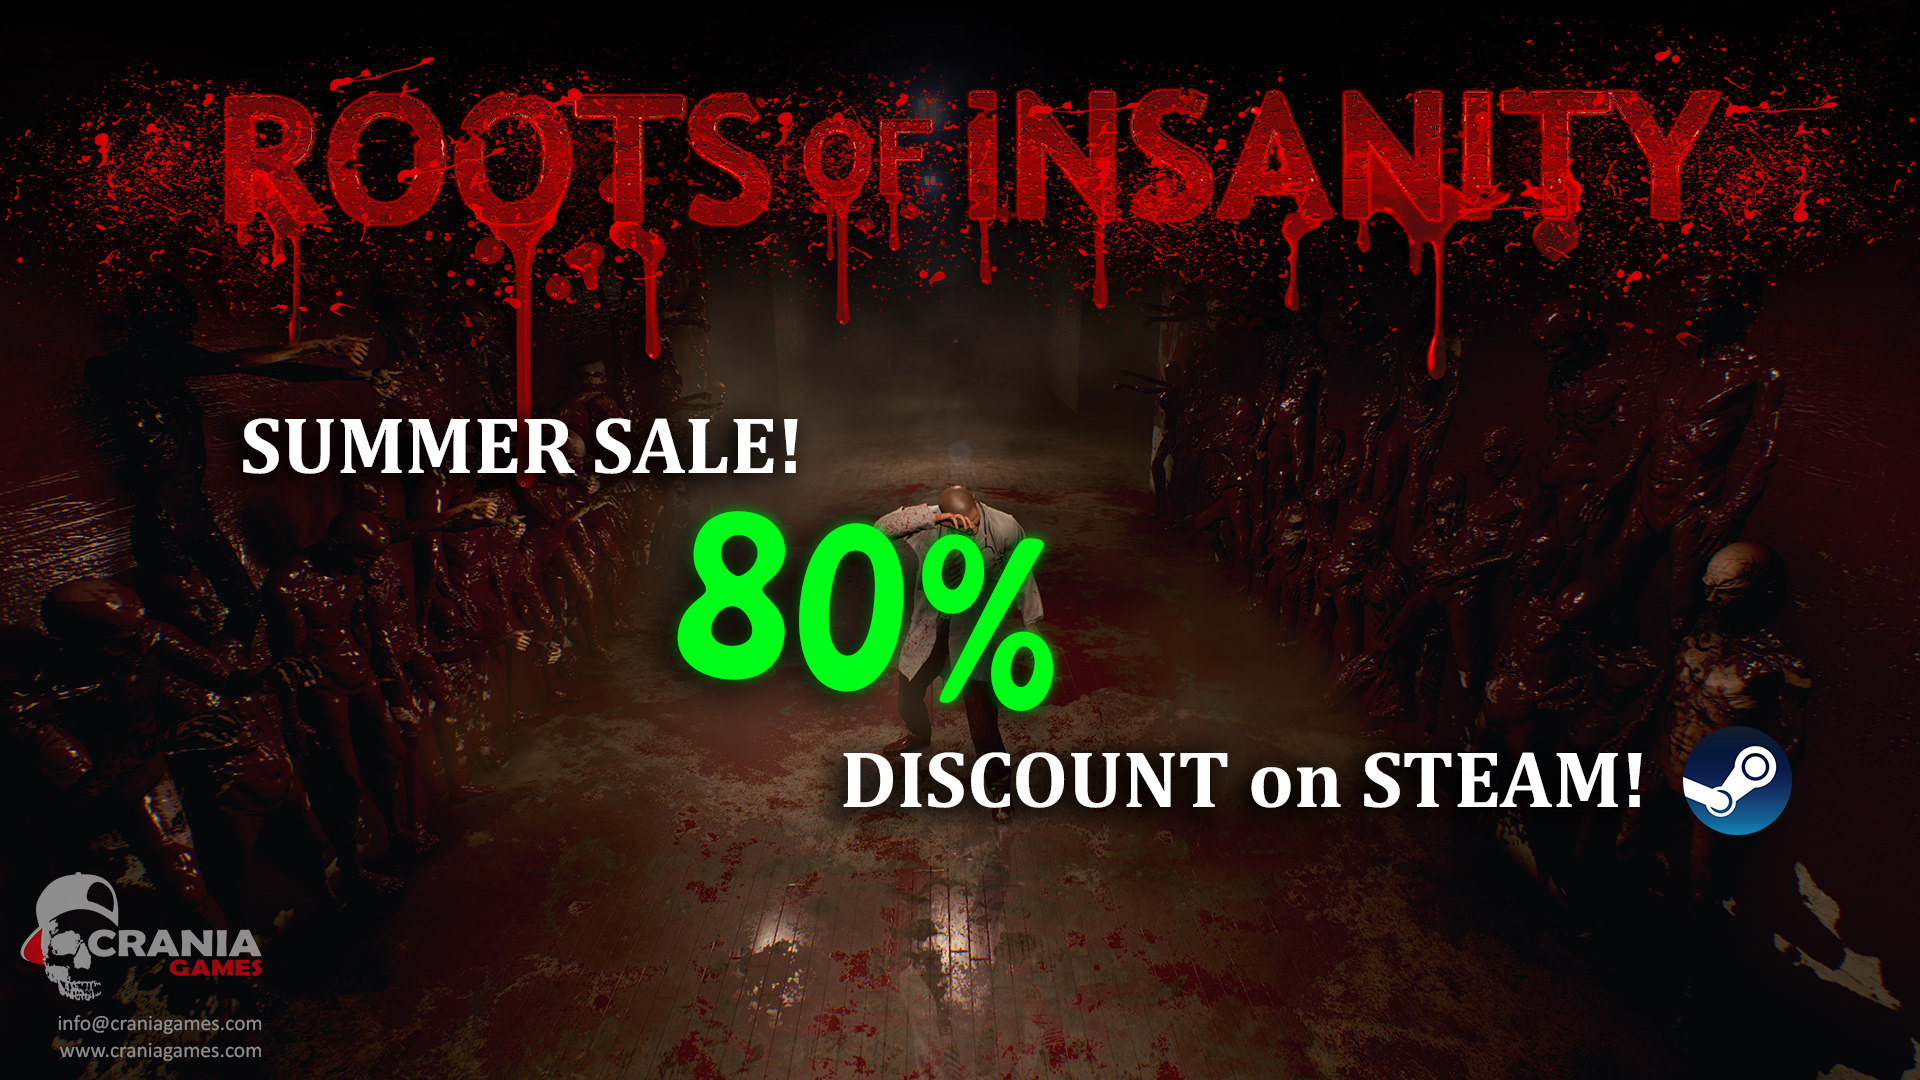 Save � for 'Roots of Insanity'!